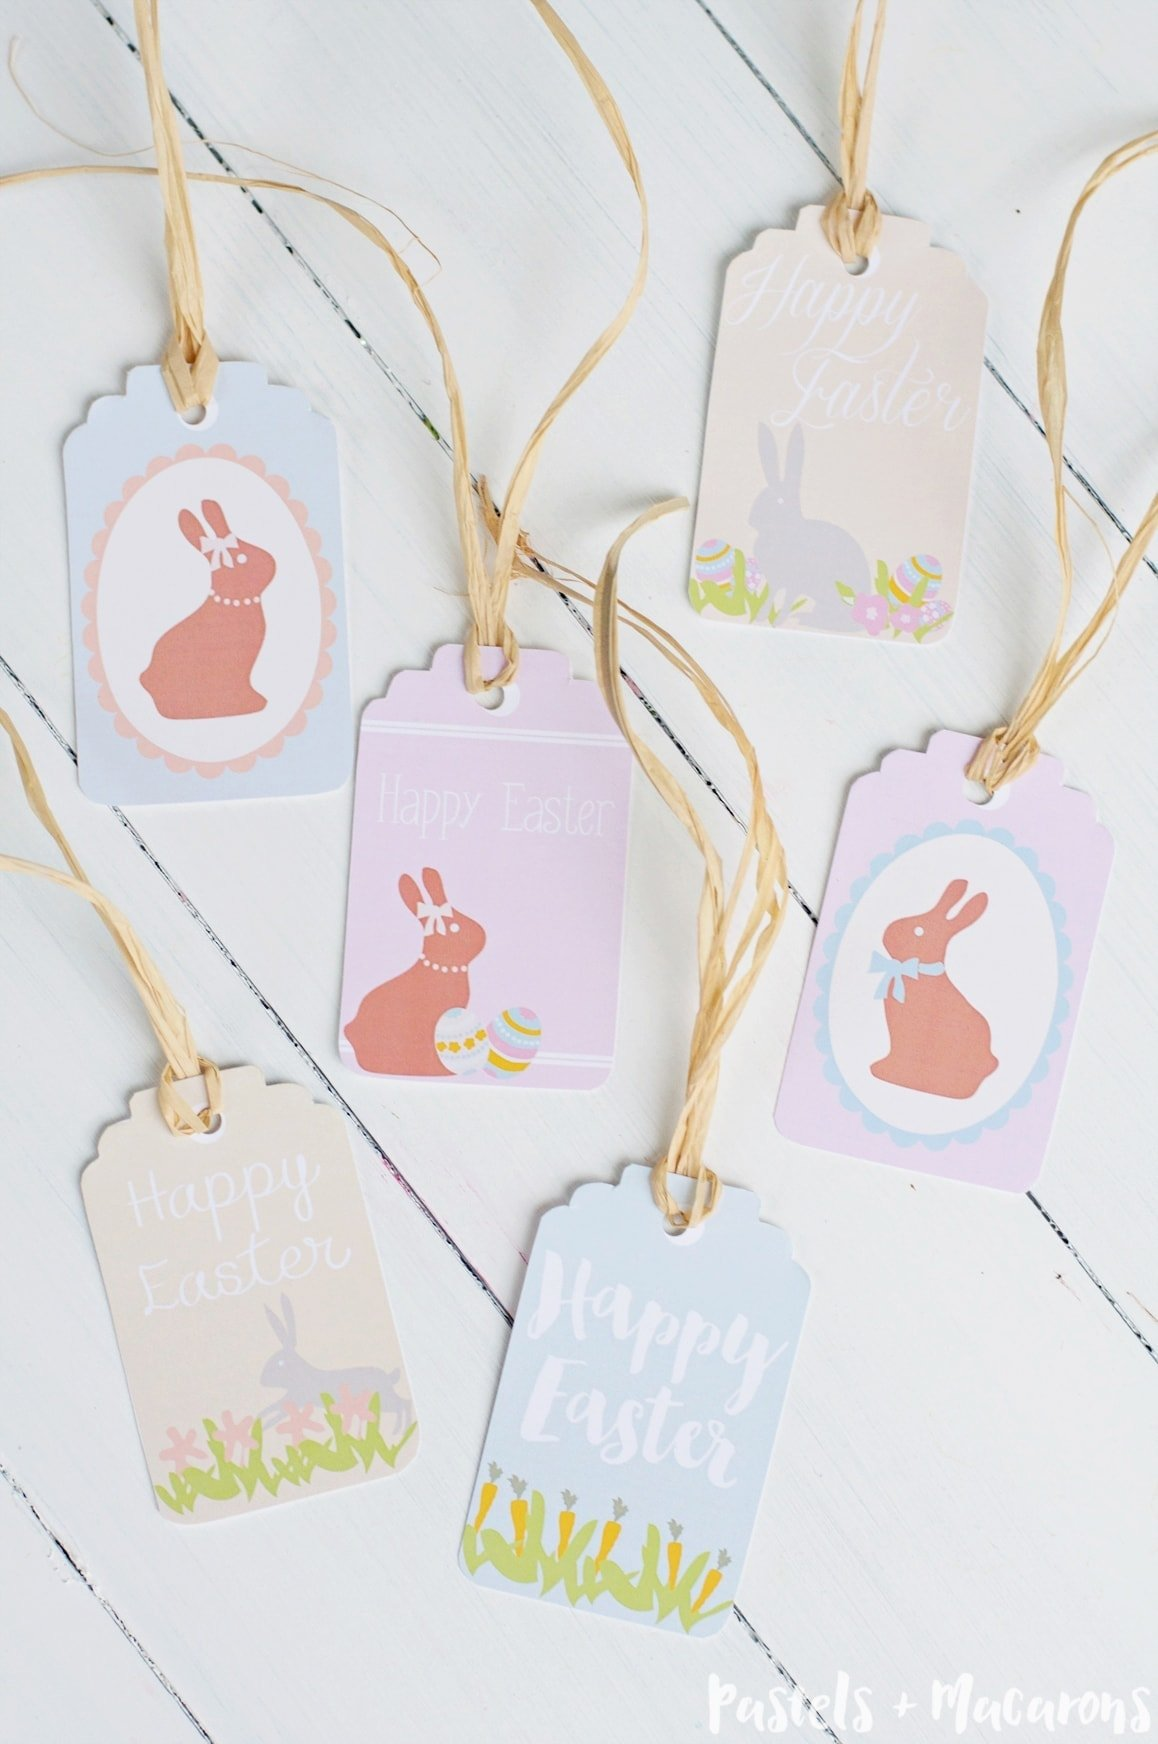 Free printable easter gift tags download your free printable easter gift tags for all your gifts this easter you get negle